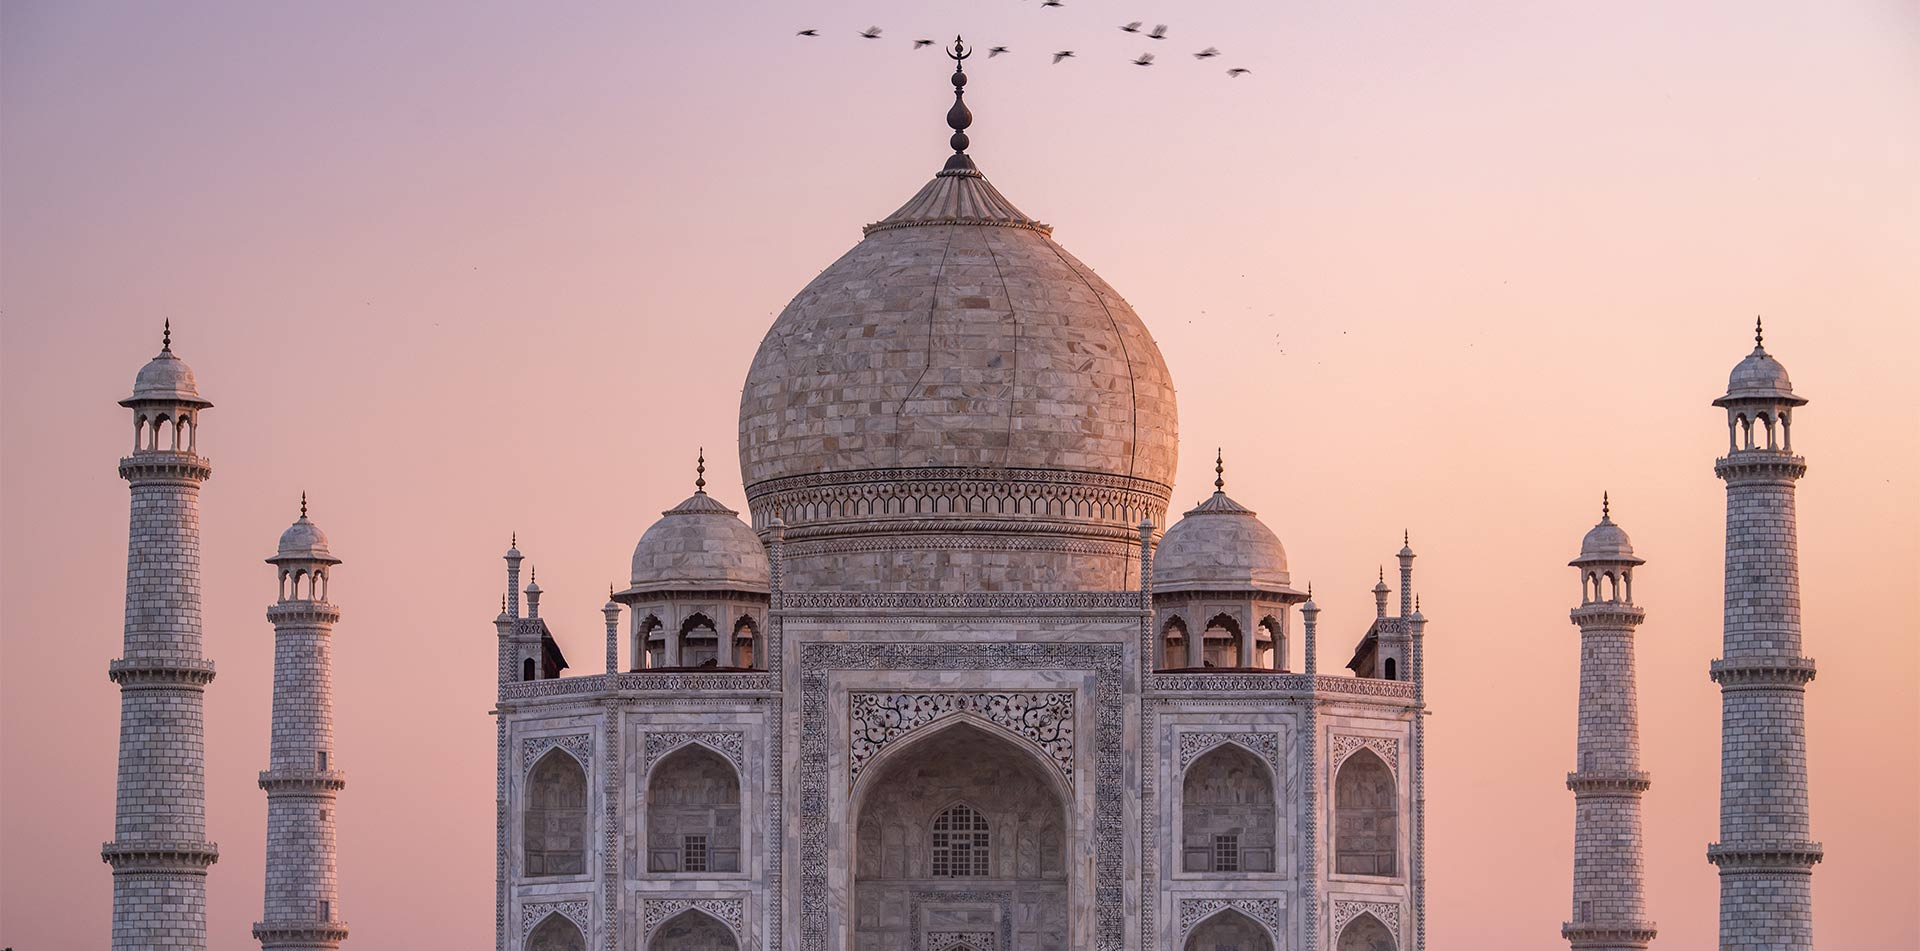 Asia India Agra view of Taj Mahal dome UNESCO world heritage site at sunset - luxury vacation destinations